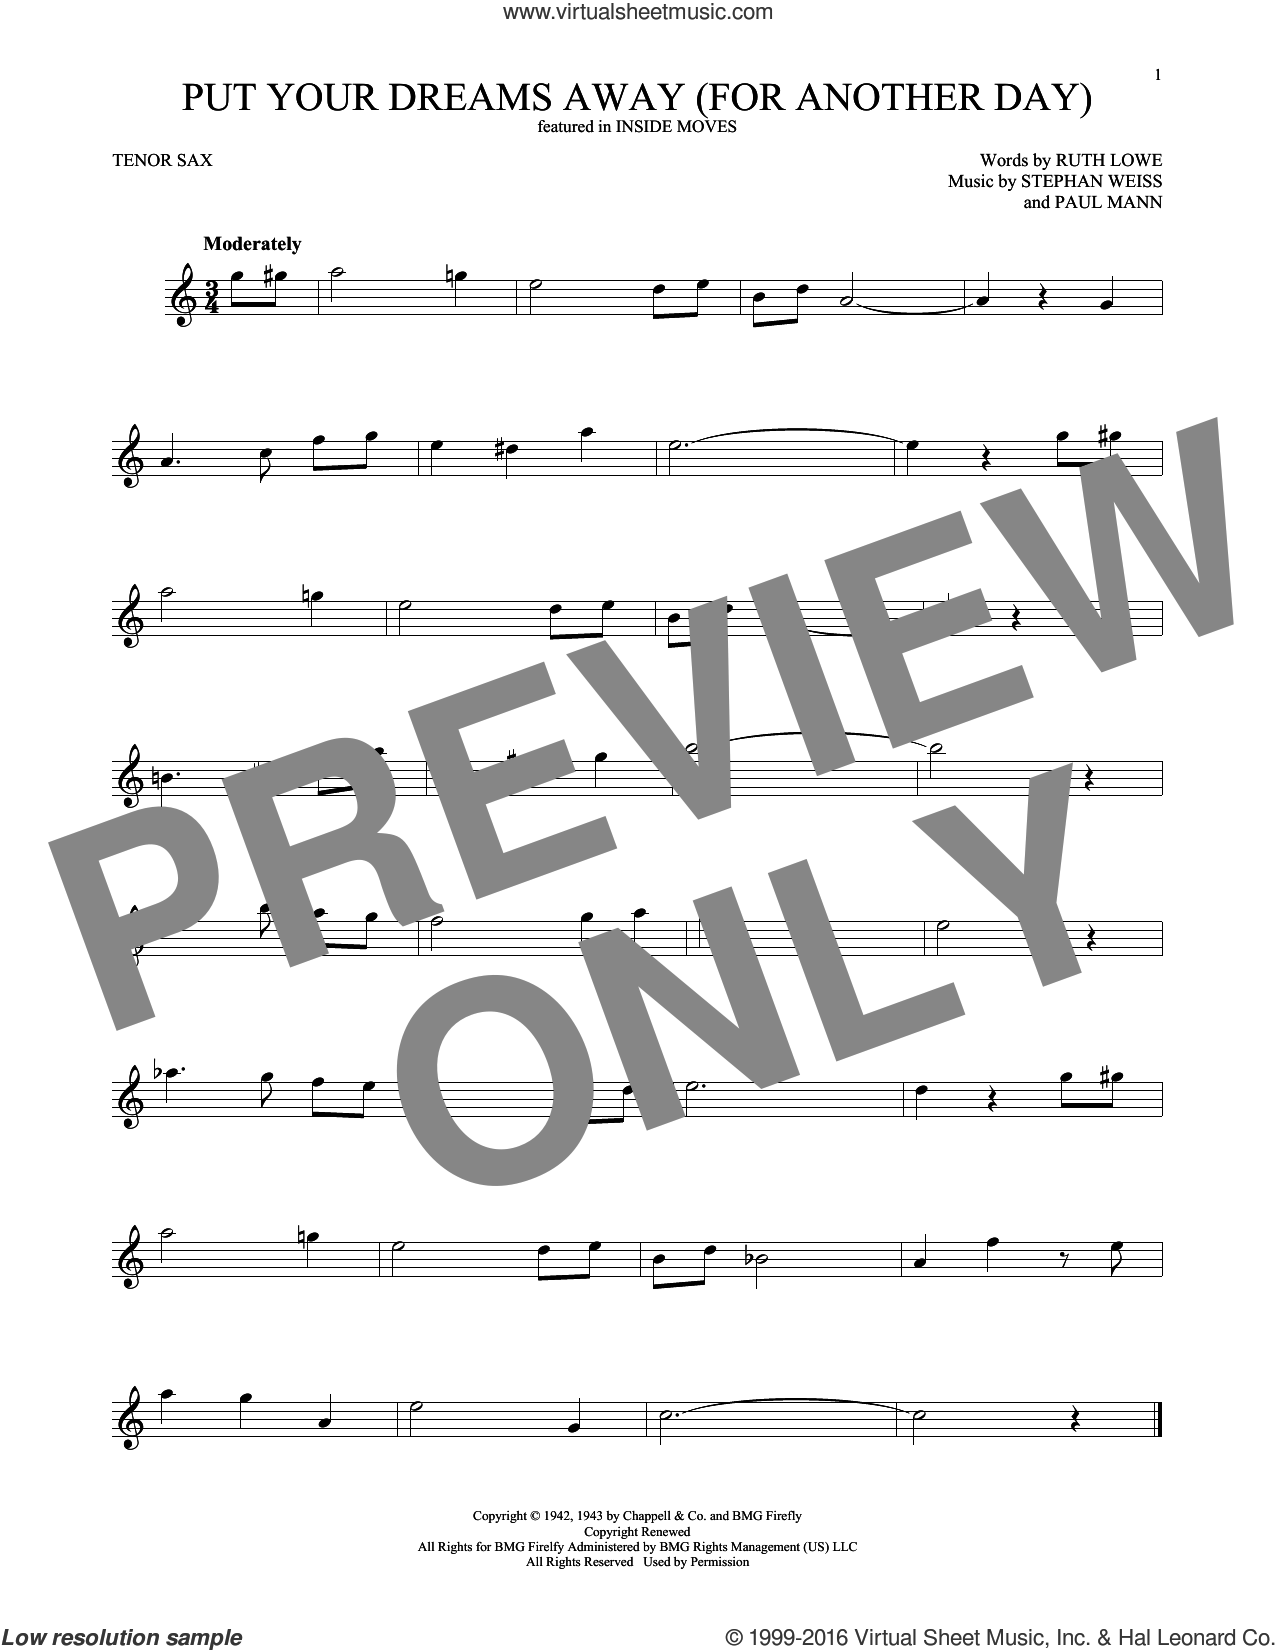 Put Your Dreams Away (For Another Day) sheet music for tenor saxophone solo by Frank Sinatra, Paul Mann, Ruth Lowe and Stephen Weiss, intermediate skill level